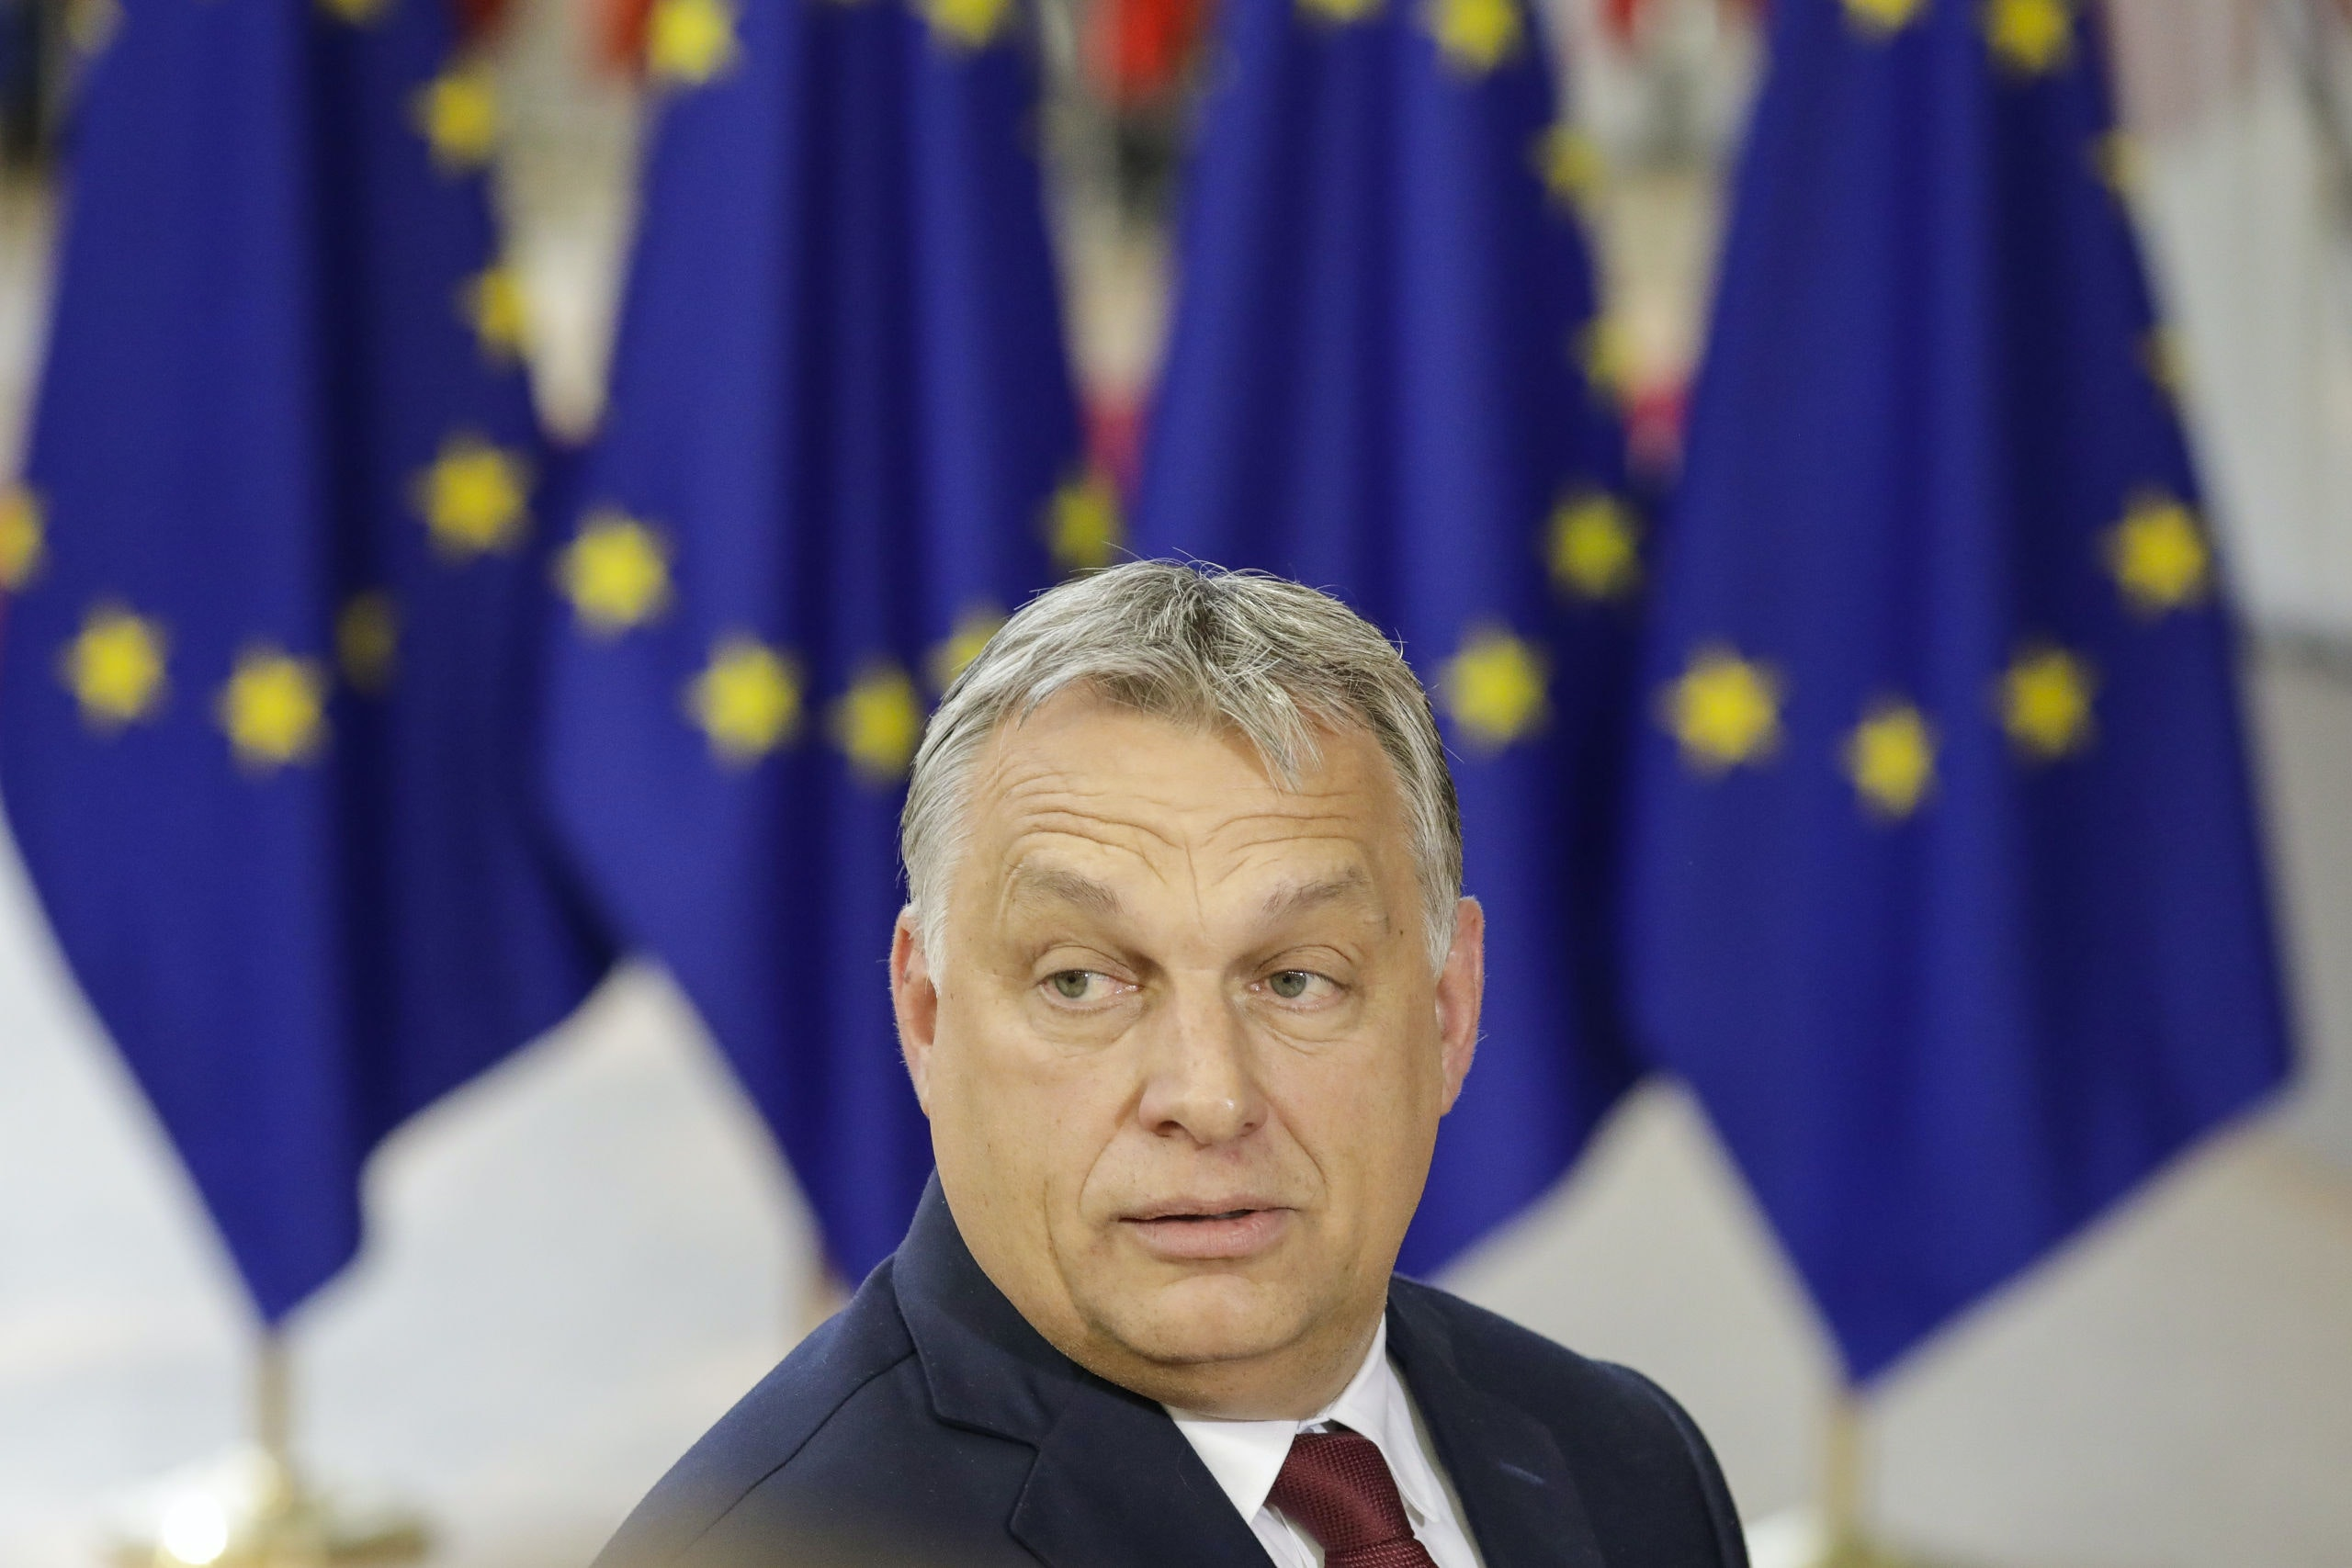 Hungary Prime Minister Viktor Orban pictured during an EU summit meeting, Thursday 28 June 2018, at the European Union headquarters in Brussels. BELGA PHOTO THIERRY ROGE